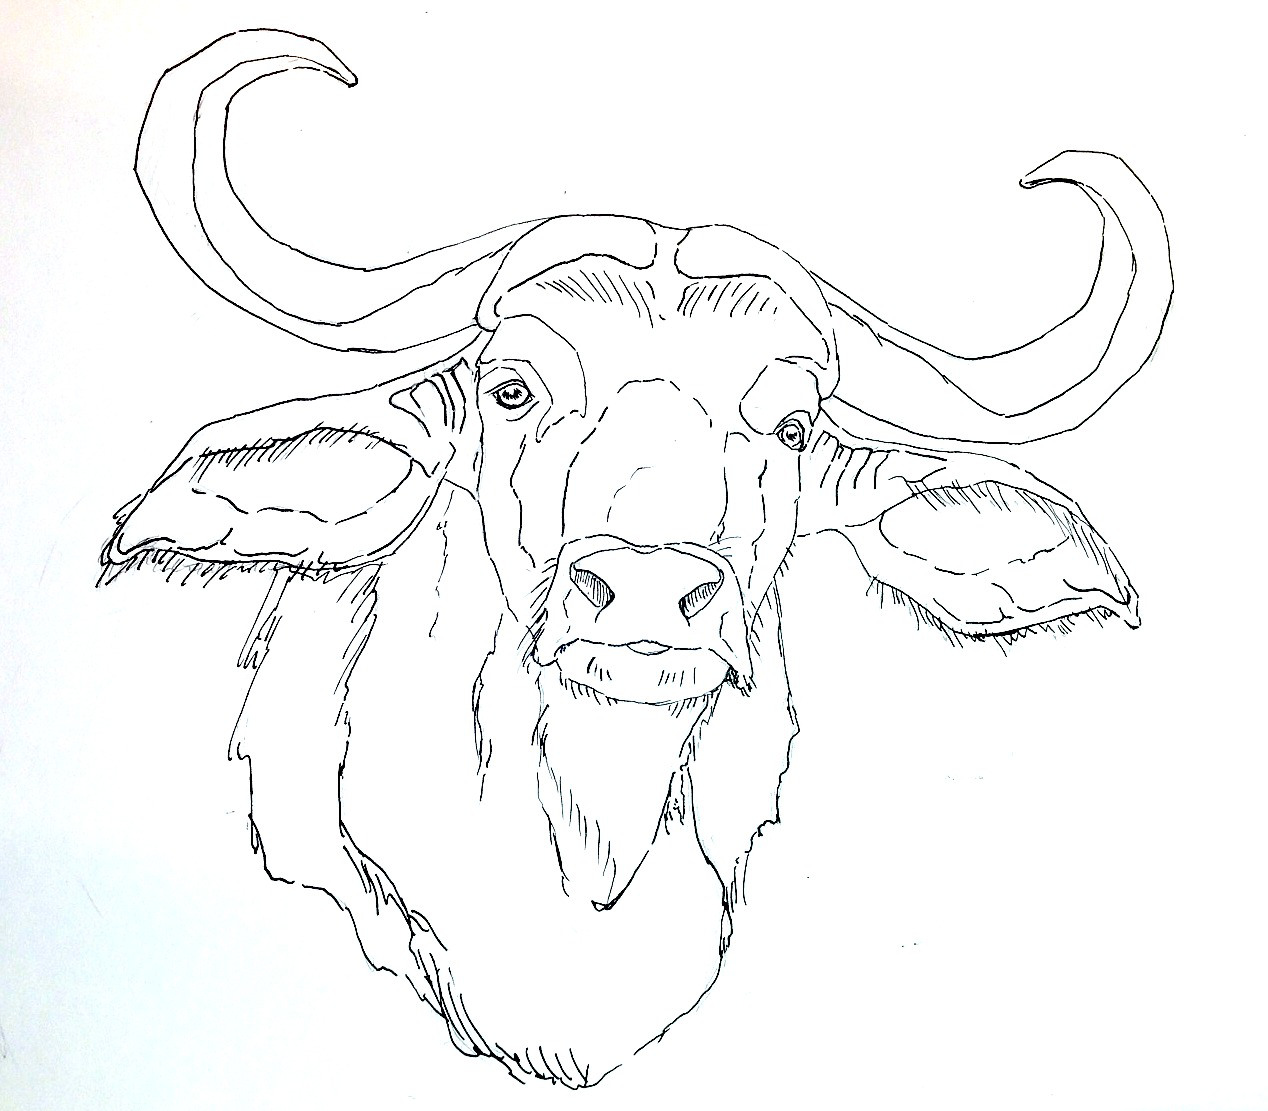 Dorable External Anatomy Of Carabao Image Collection Physiology Of